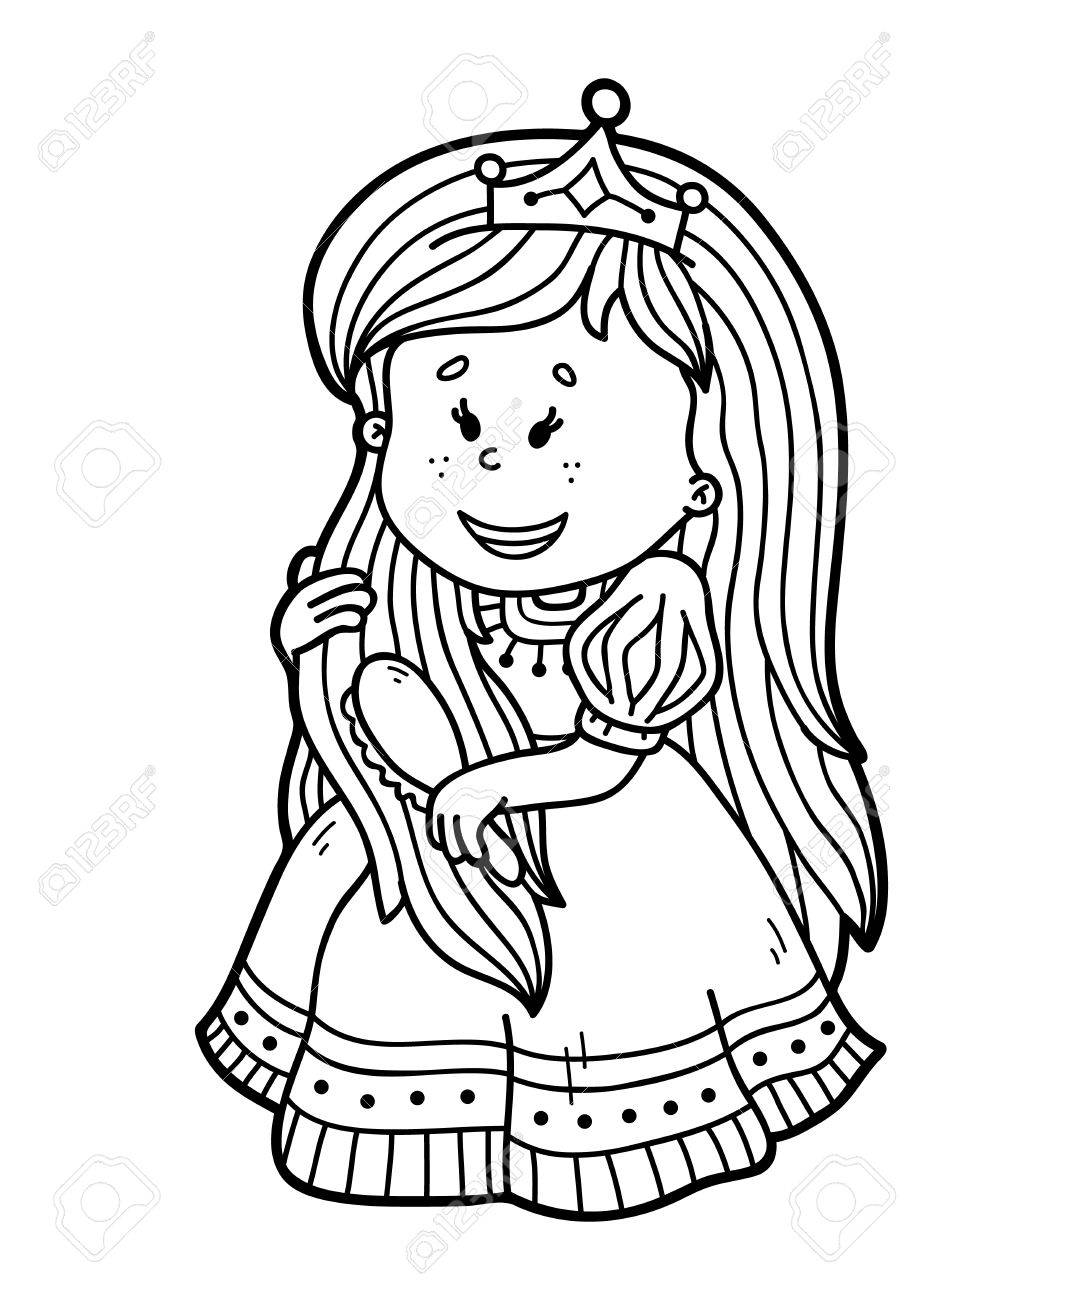 Cute Princess Vector Illustration Coloring Page Of Happy Cartoon For Children And Scrap Book